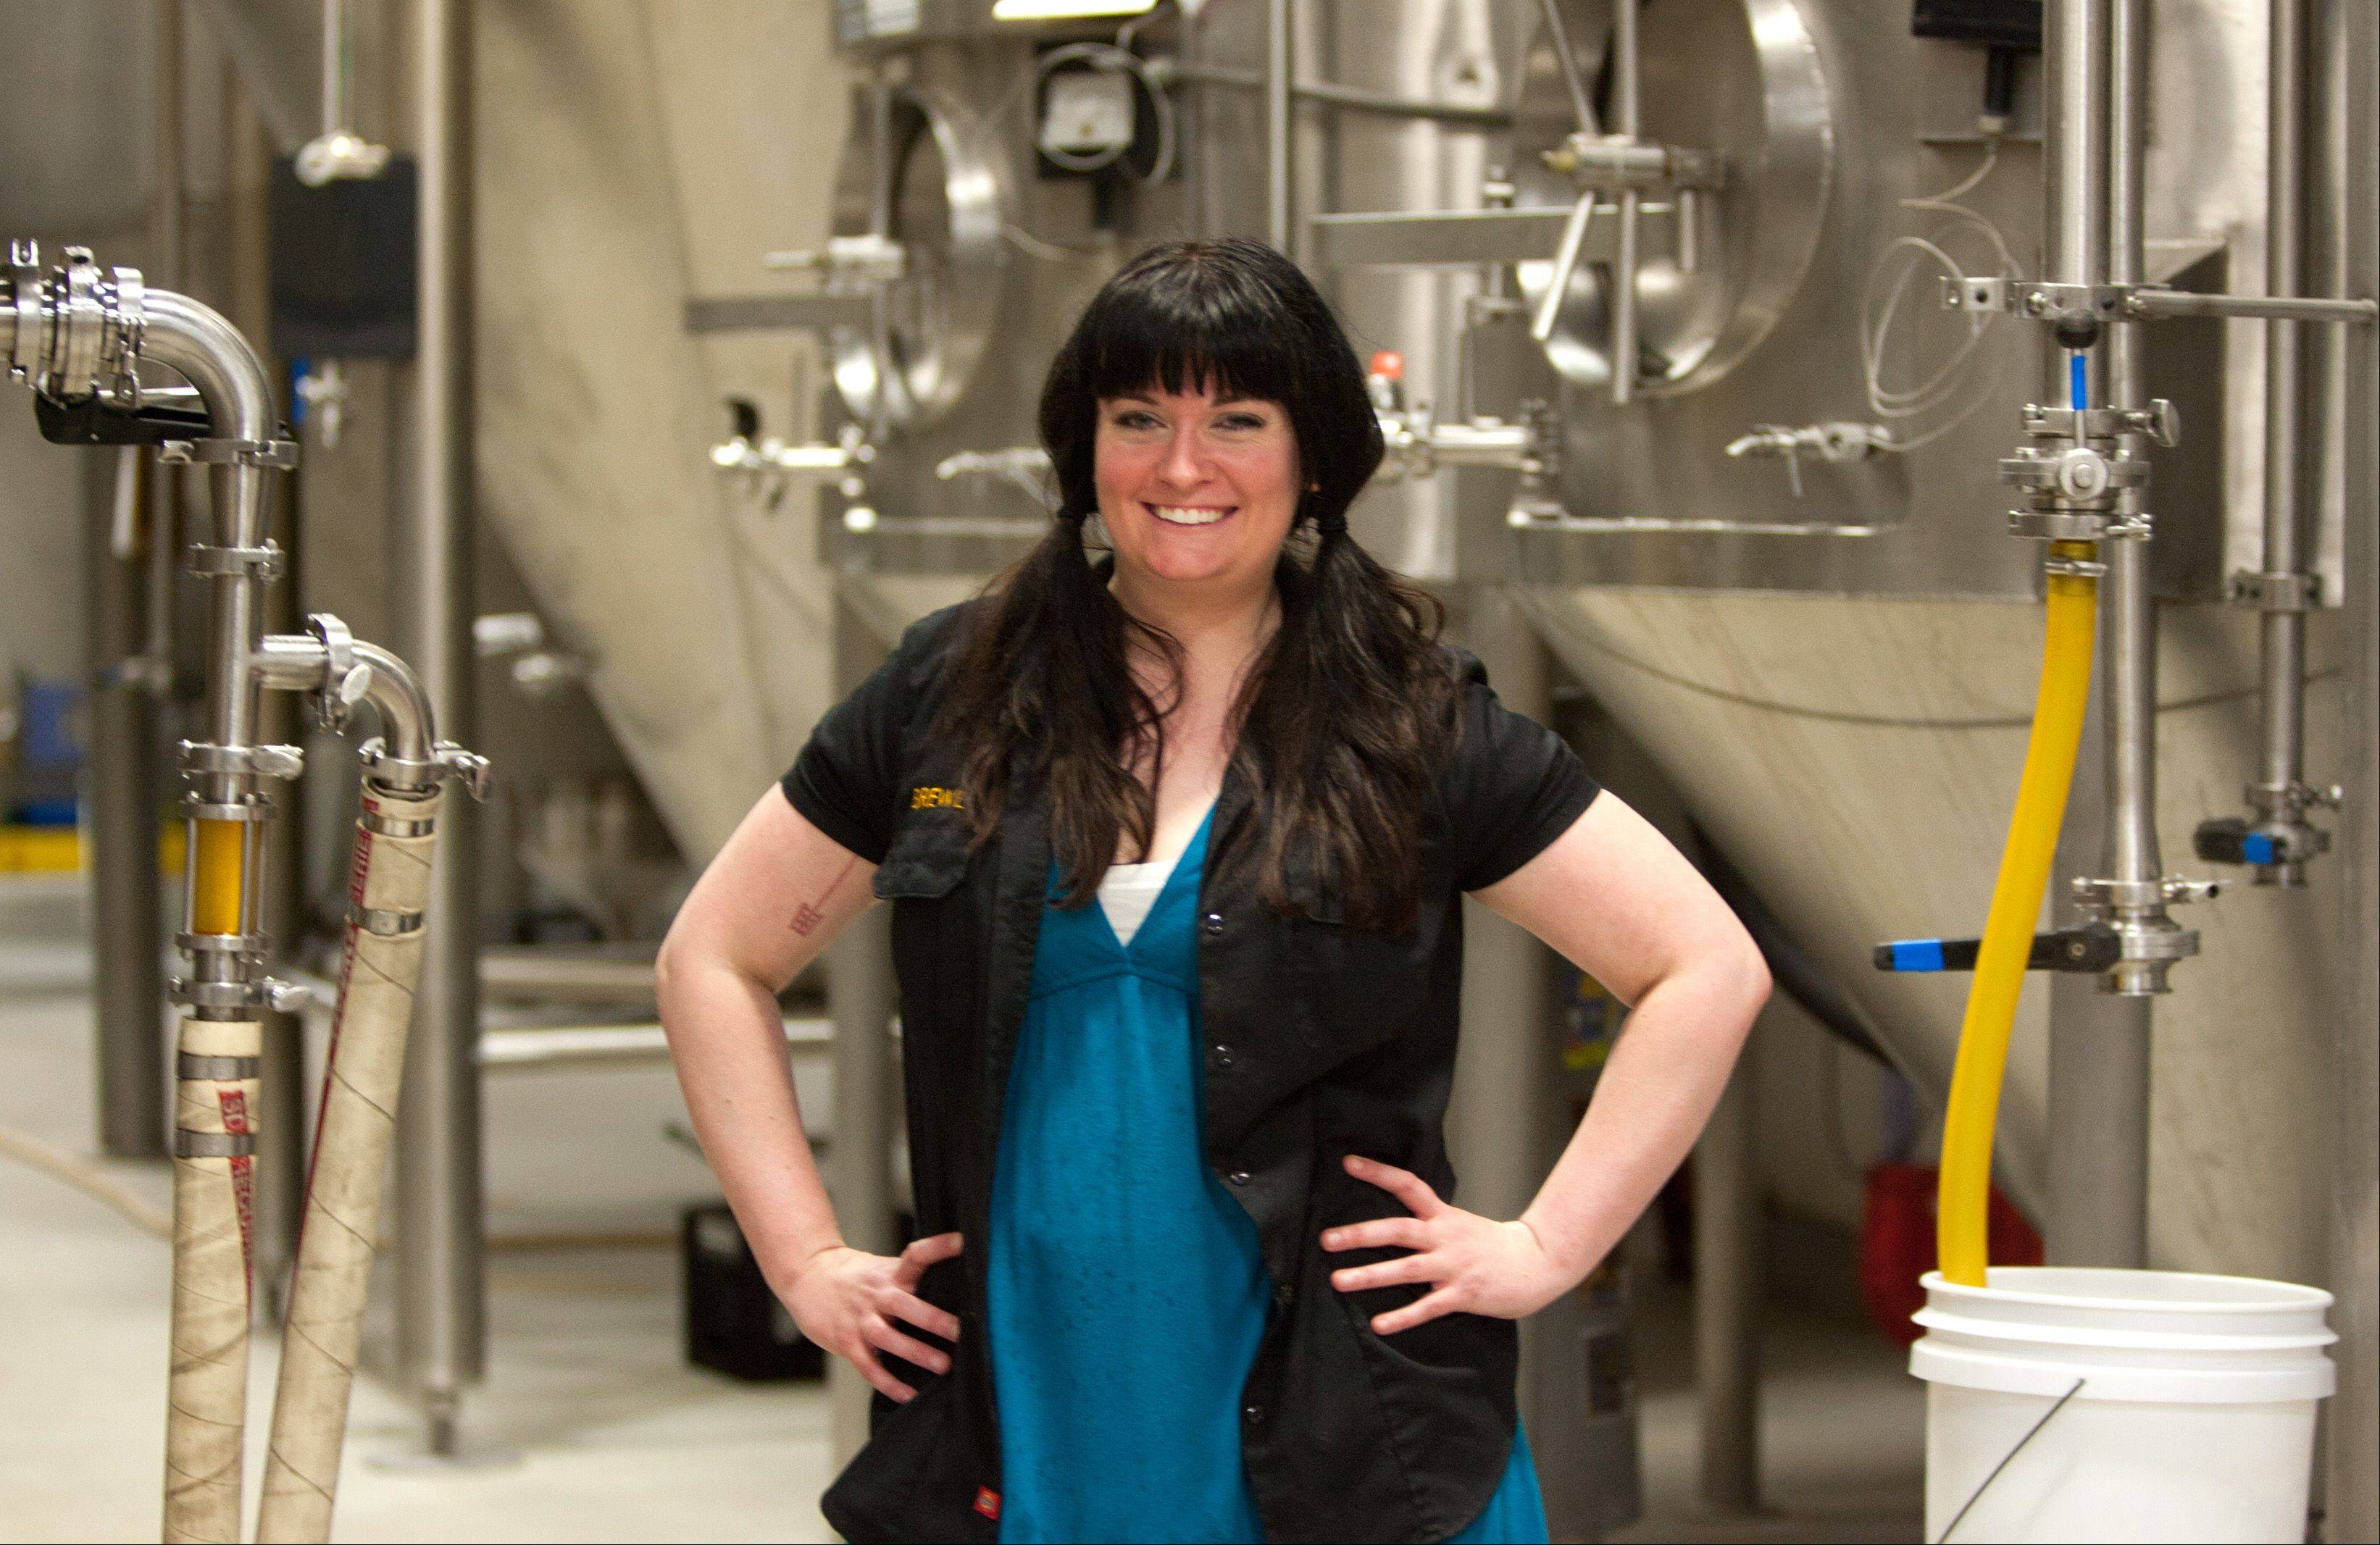 Ashleigh Arnold is the only female brewer at Two Brothers Brewery in Warrenville, but one of a growing number of female professional brewers.